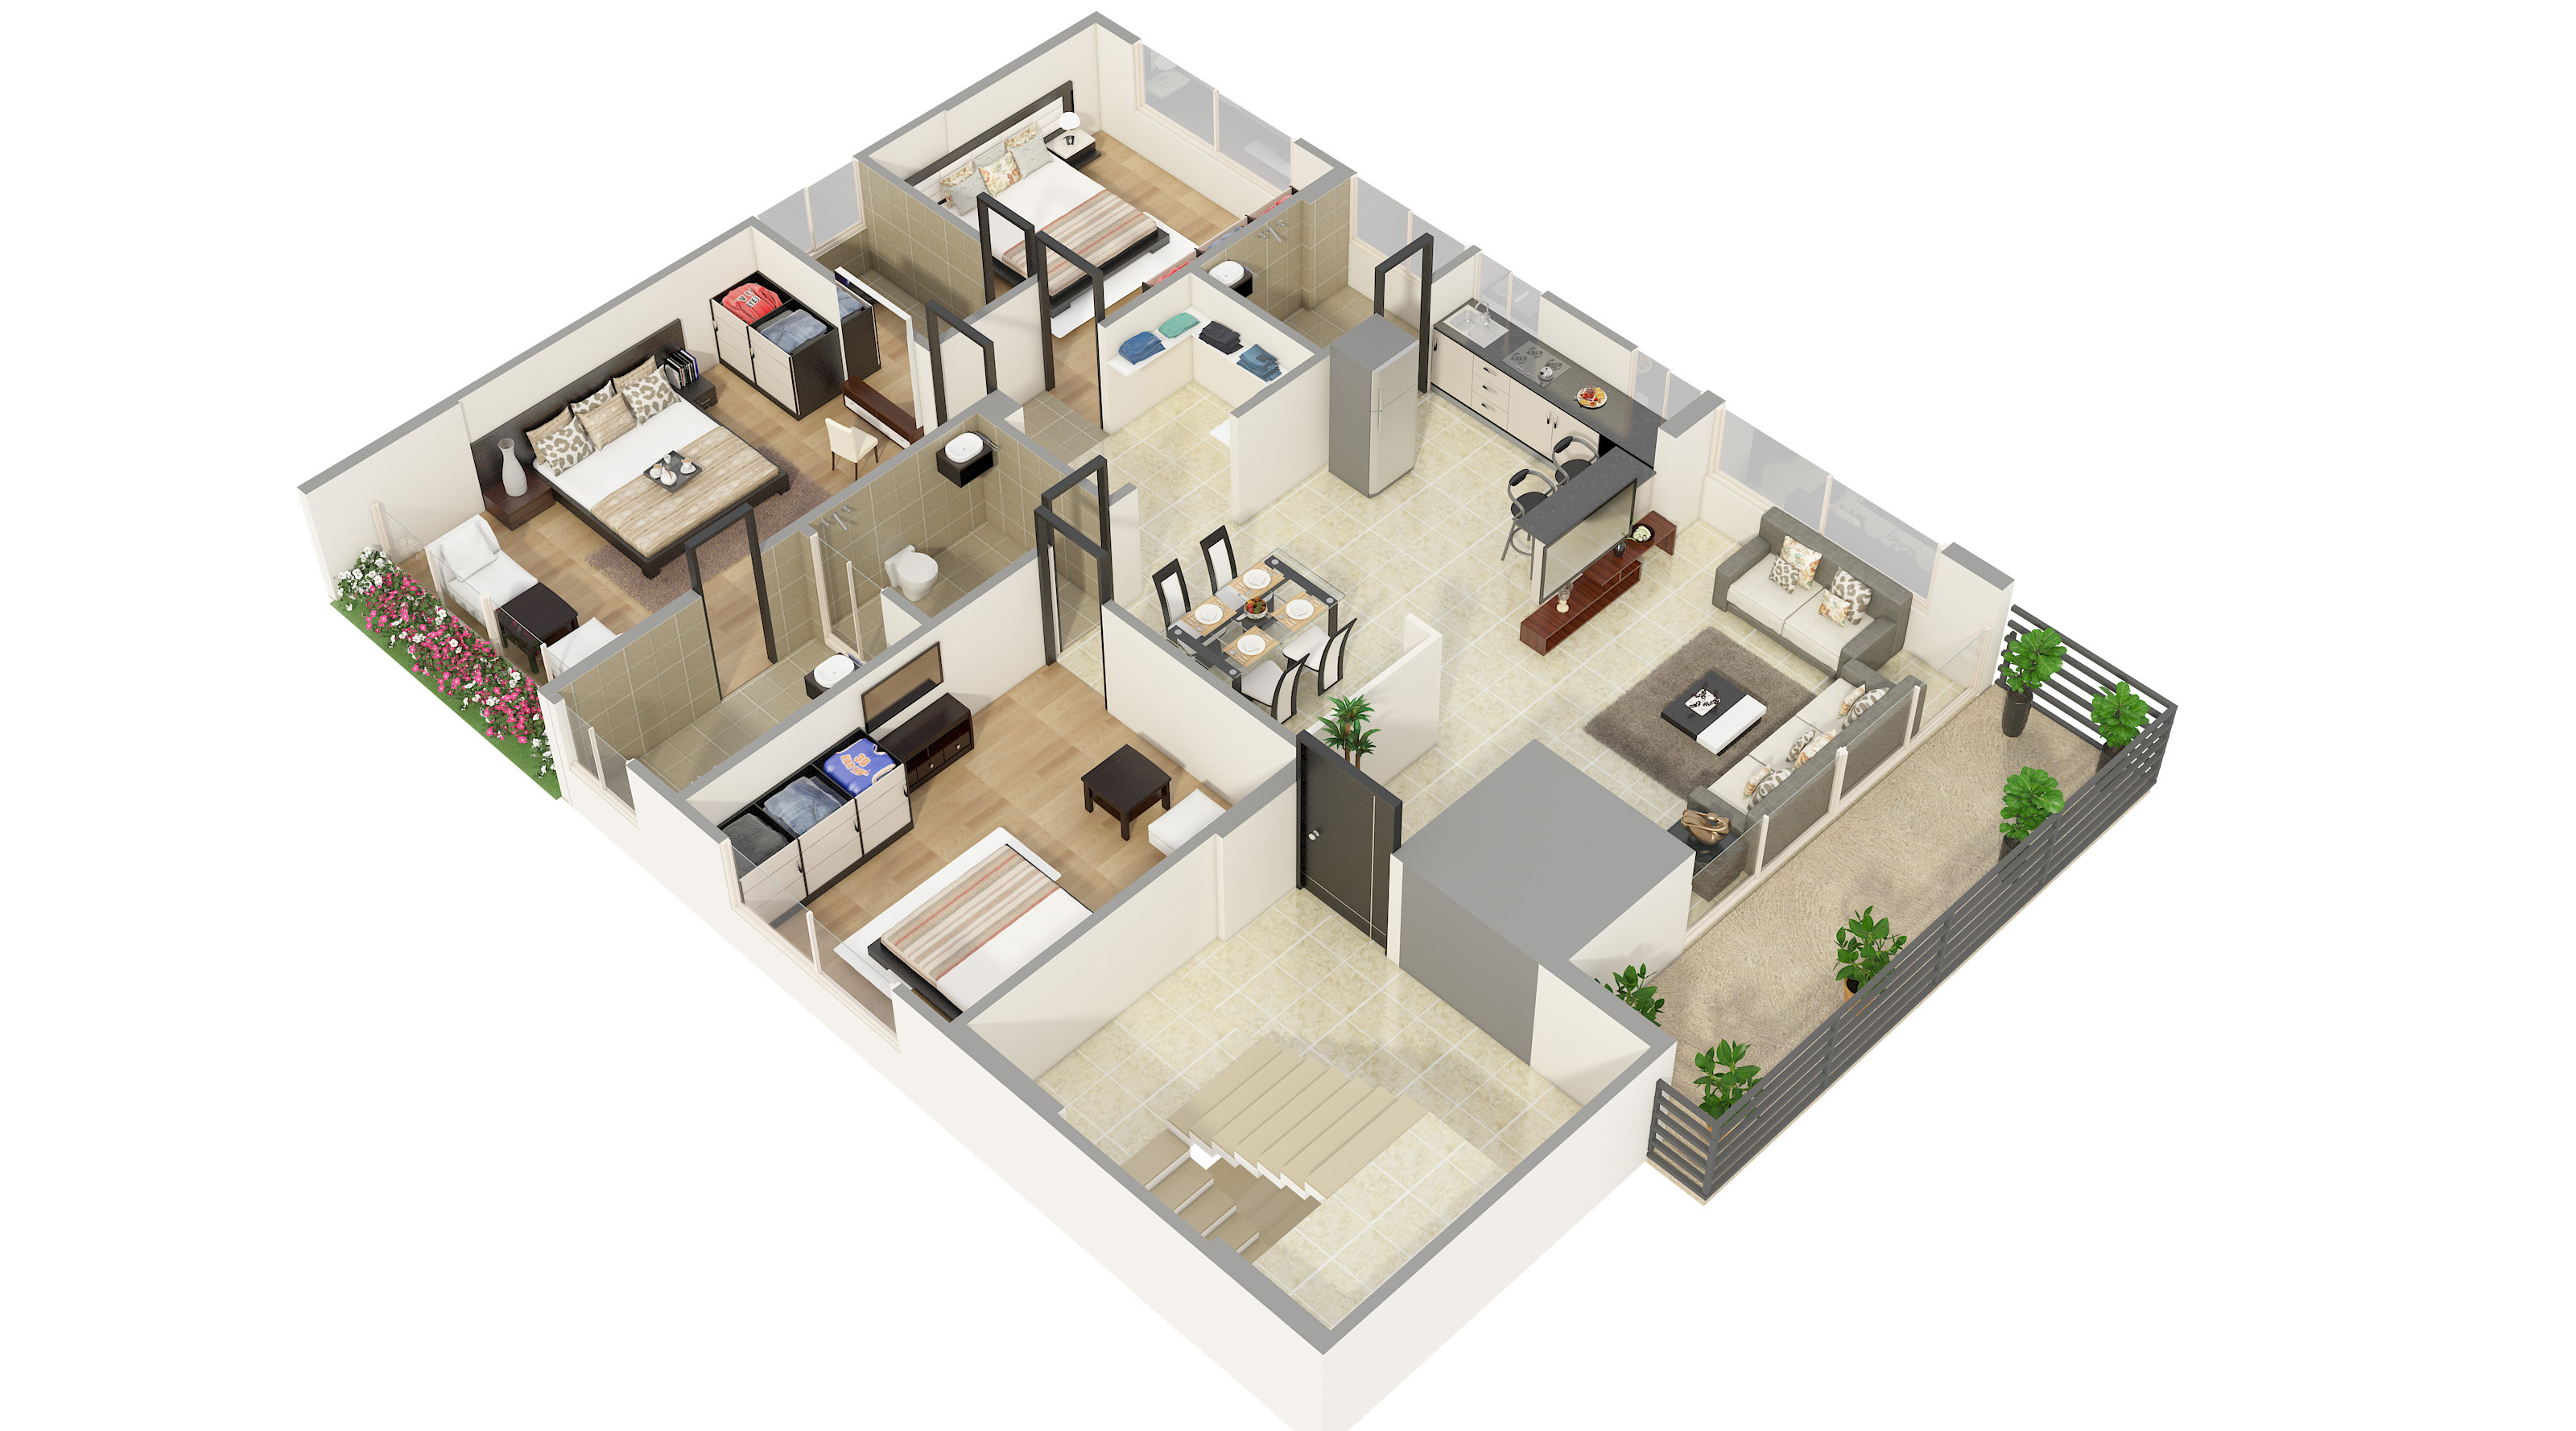 Photorealistic 3D Floor Plan Renderings Services 3D Floor Plan Rendering Services are a great way of intuitive 3D visualization of rooms, furniture elements, and decoration of your proposed development. by JMSDCONSULTANT